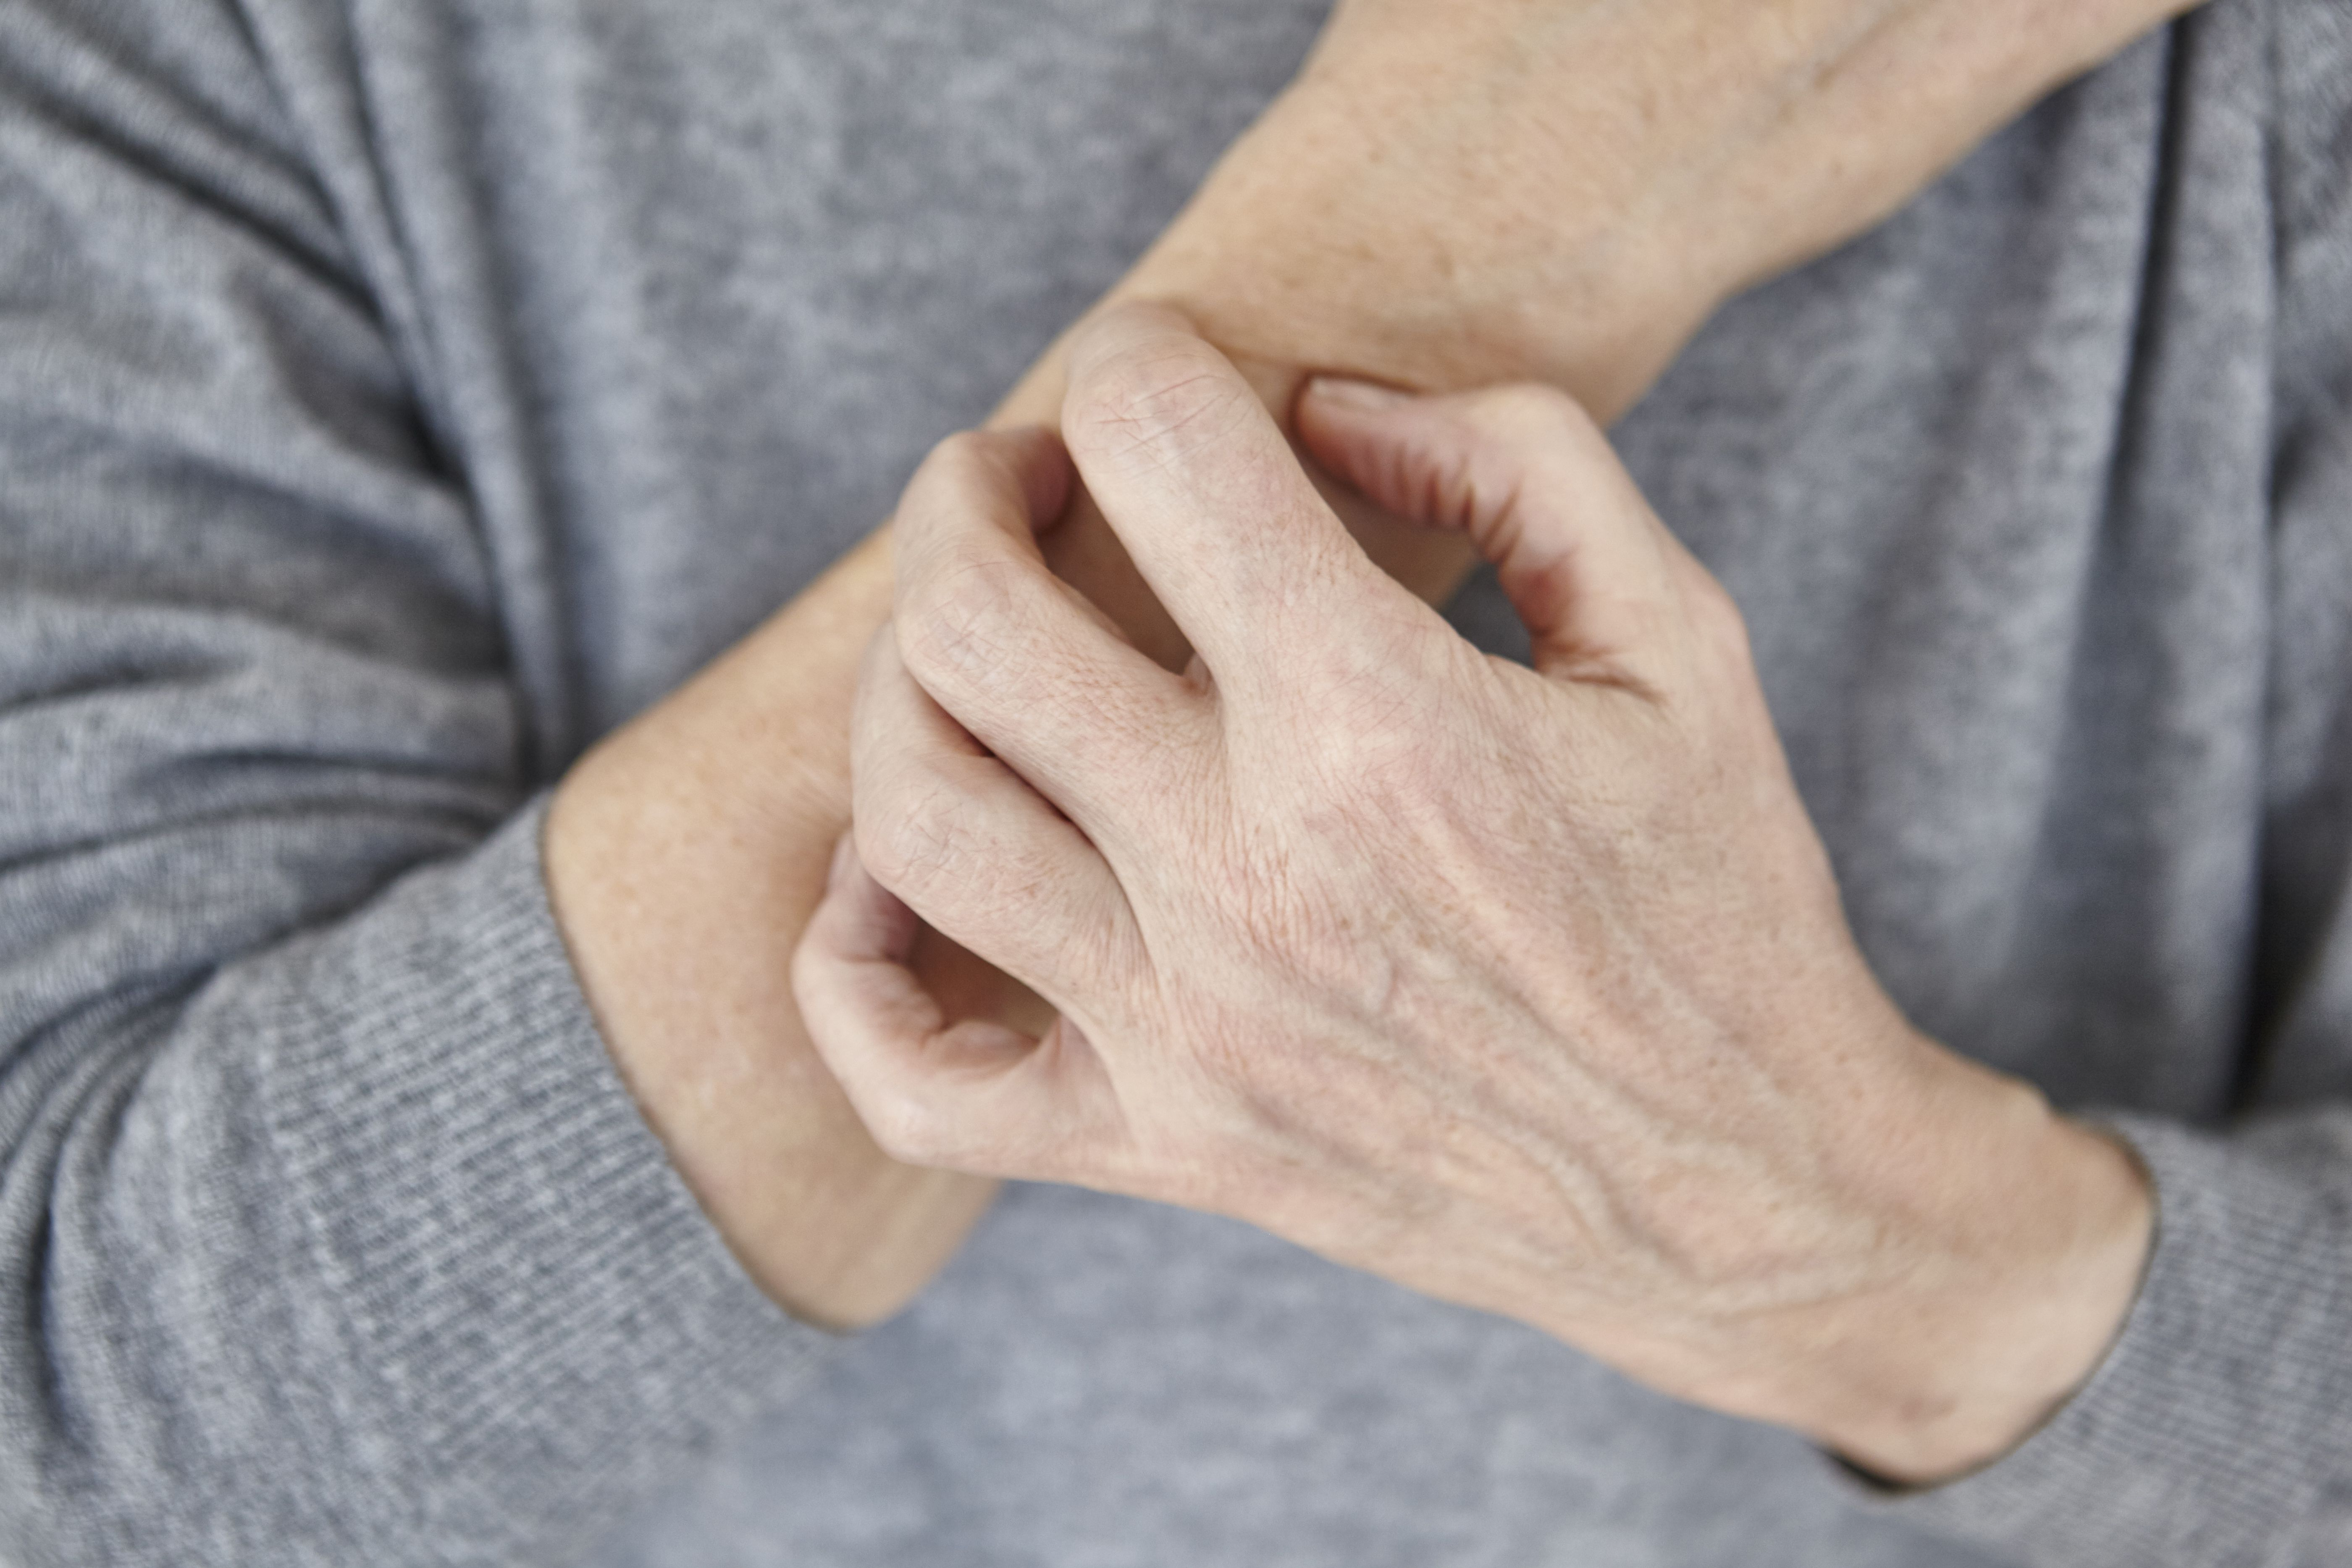 Scabies: Signs, Symptoms, and Complications